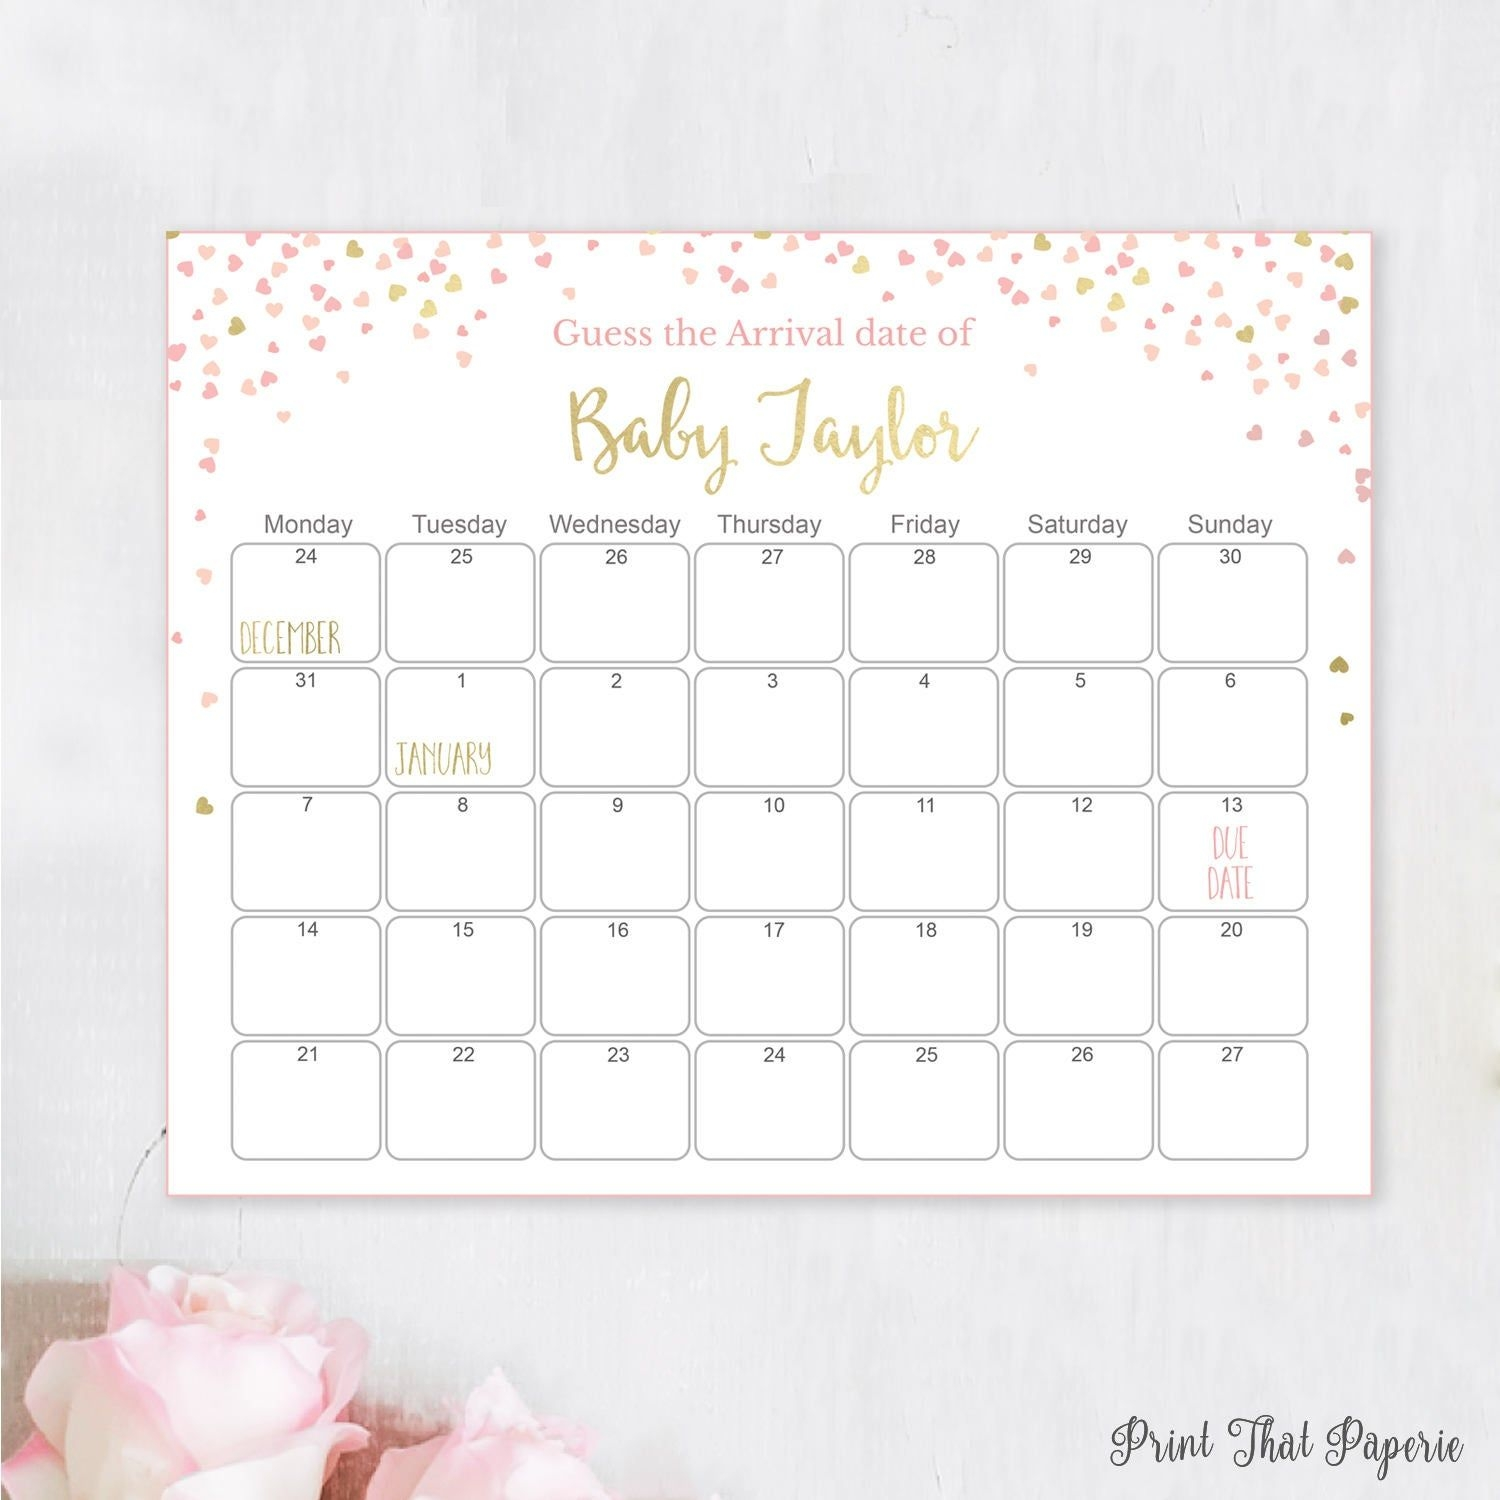 Guess The Due Date - Pink Baby Shower Games - Baby Shower Birthday  Prediction, Printable Baby Shower Due Date Calendar, Pink And Gold Hearts